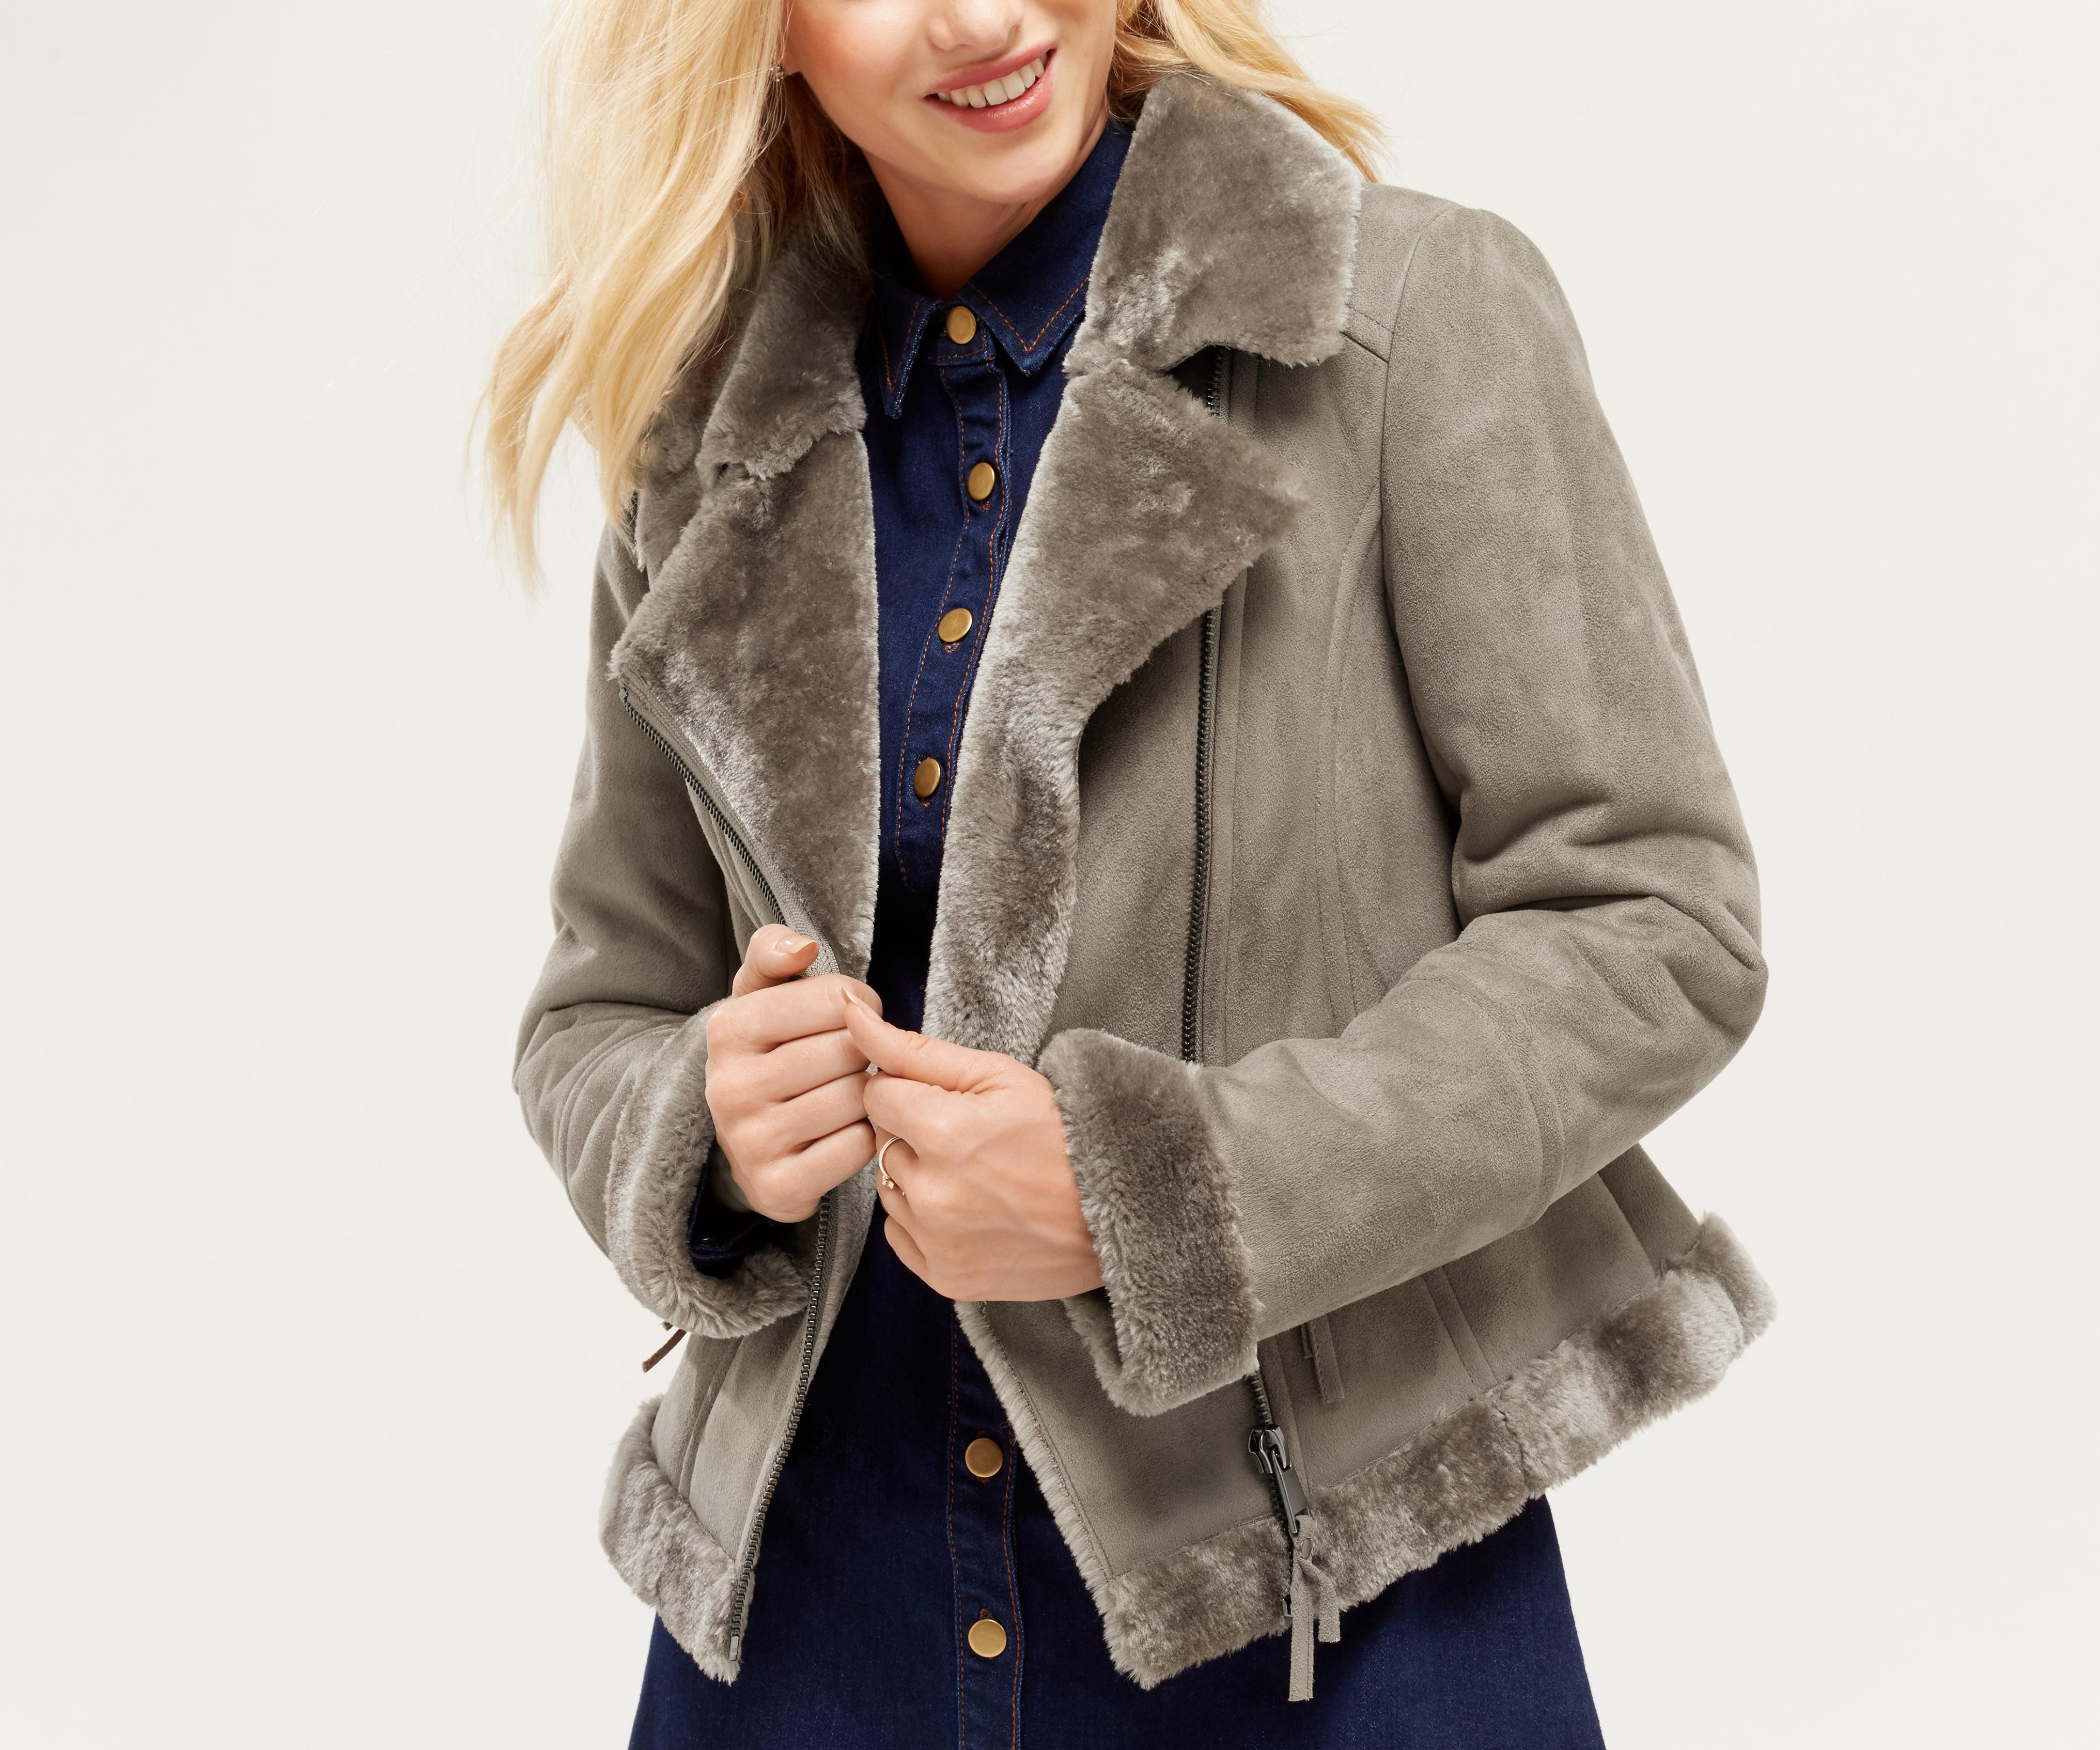 677a914e19c1 Oasis Faux Shearling Jacket in Gray - Lyst